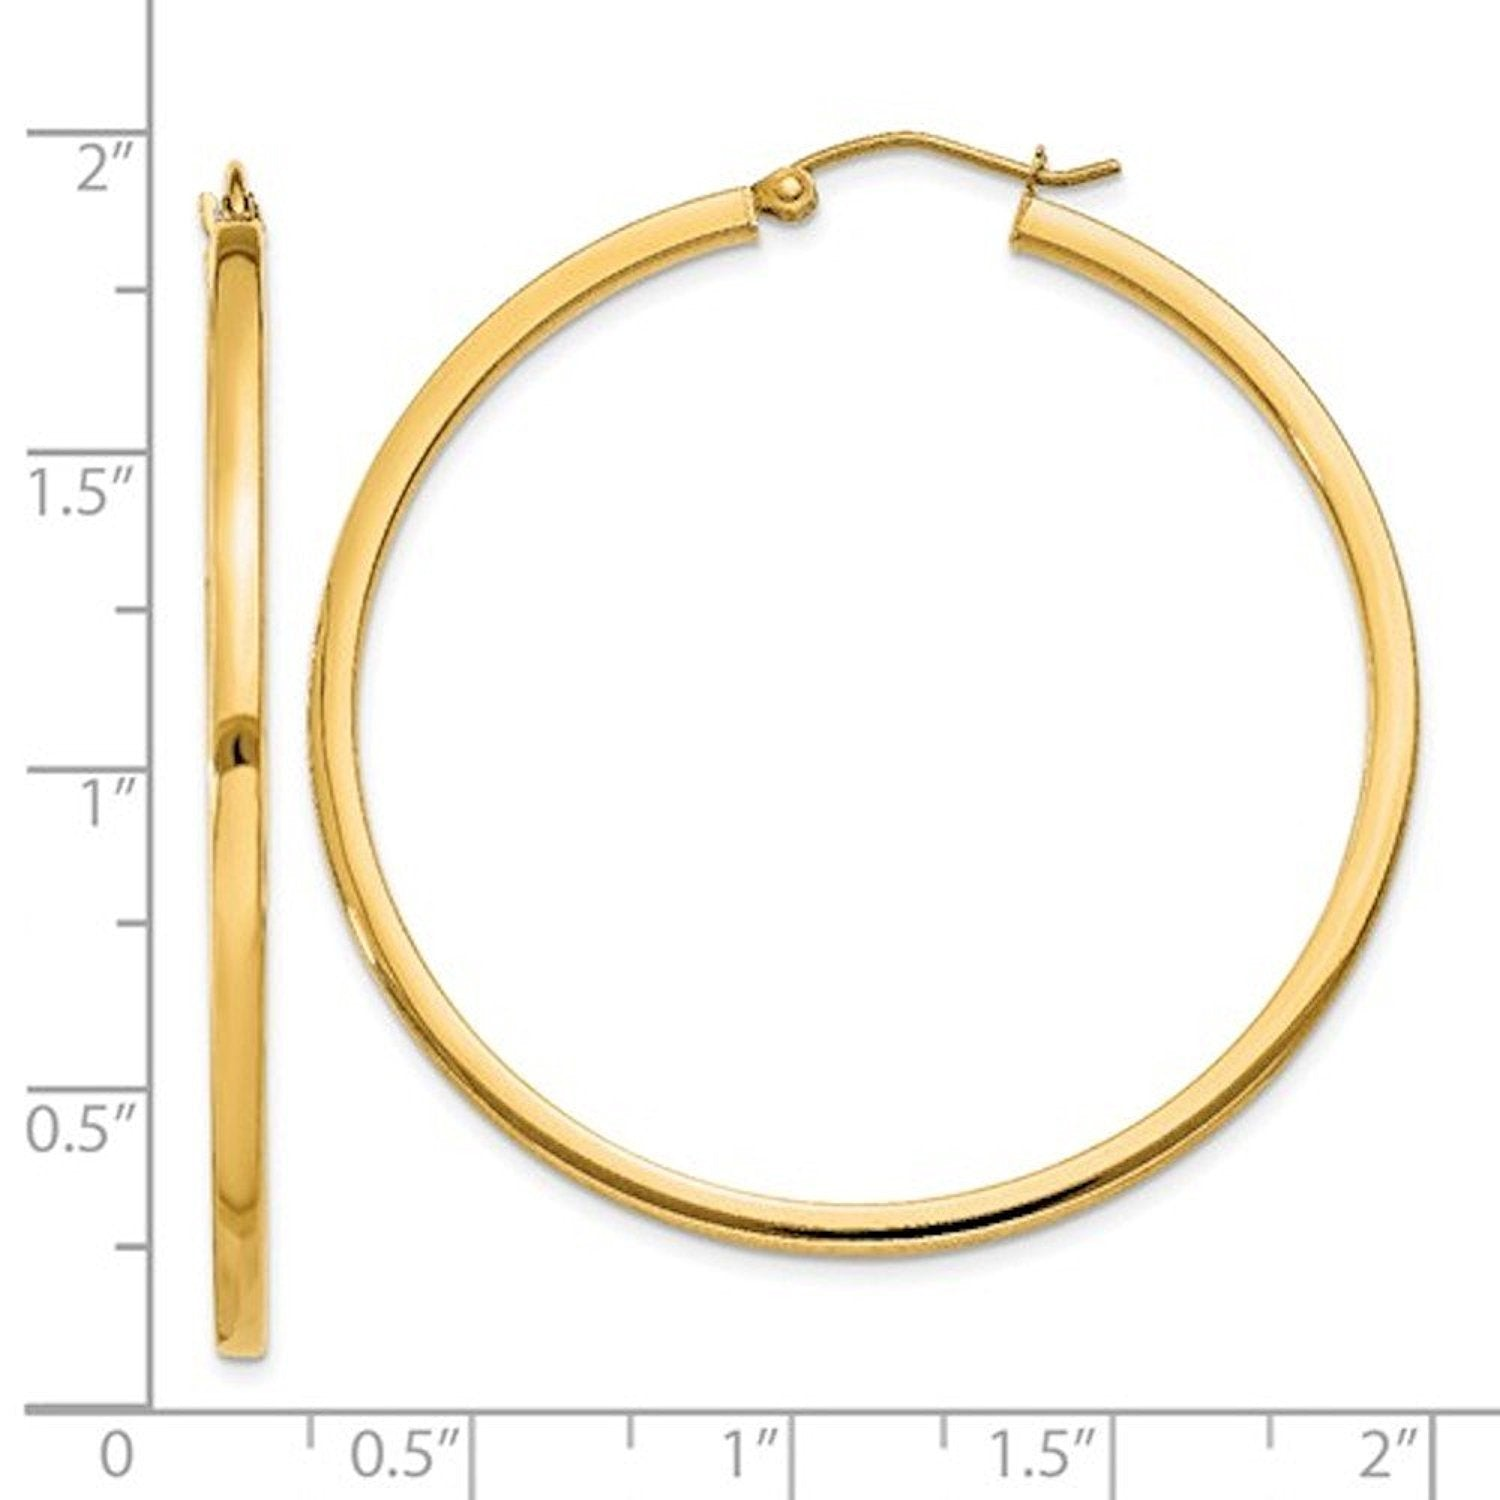 14k Yellow Gold Square Tube Round Hoop Earrings 45mm x 2mm